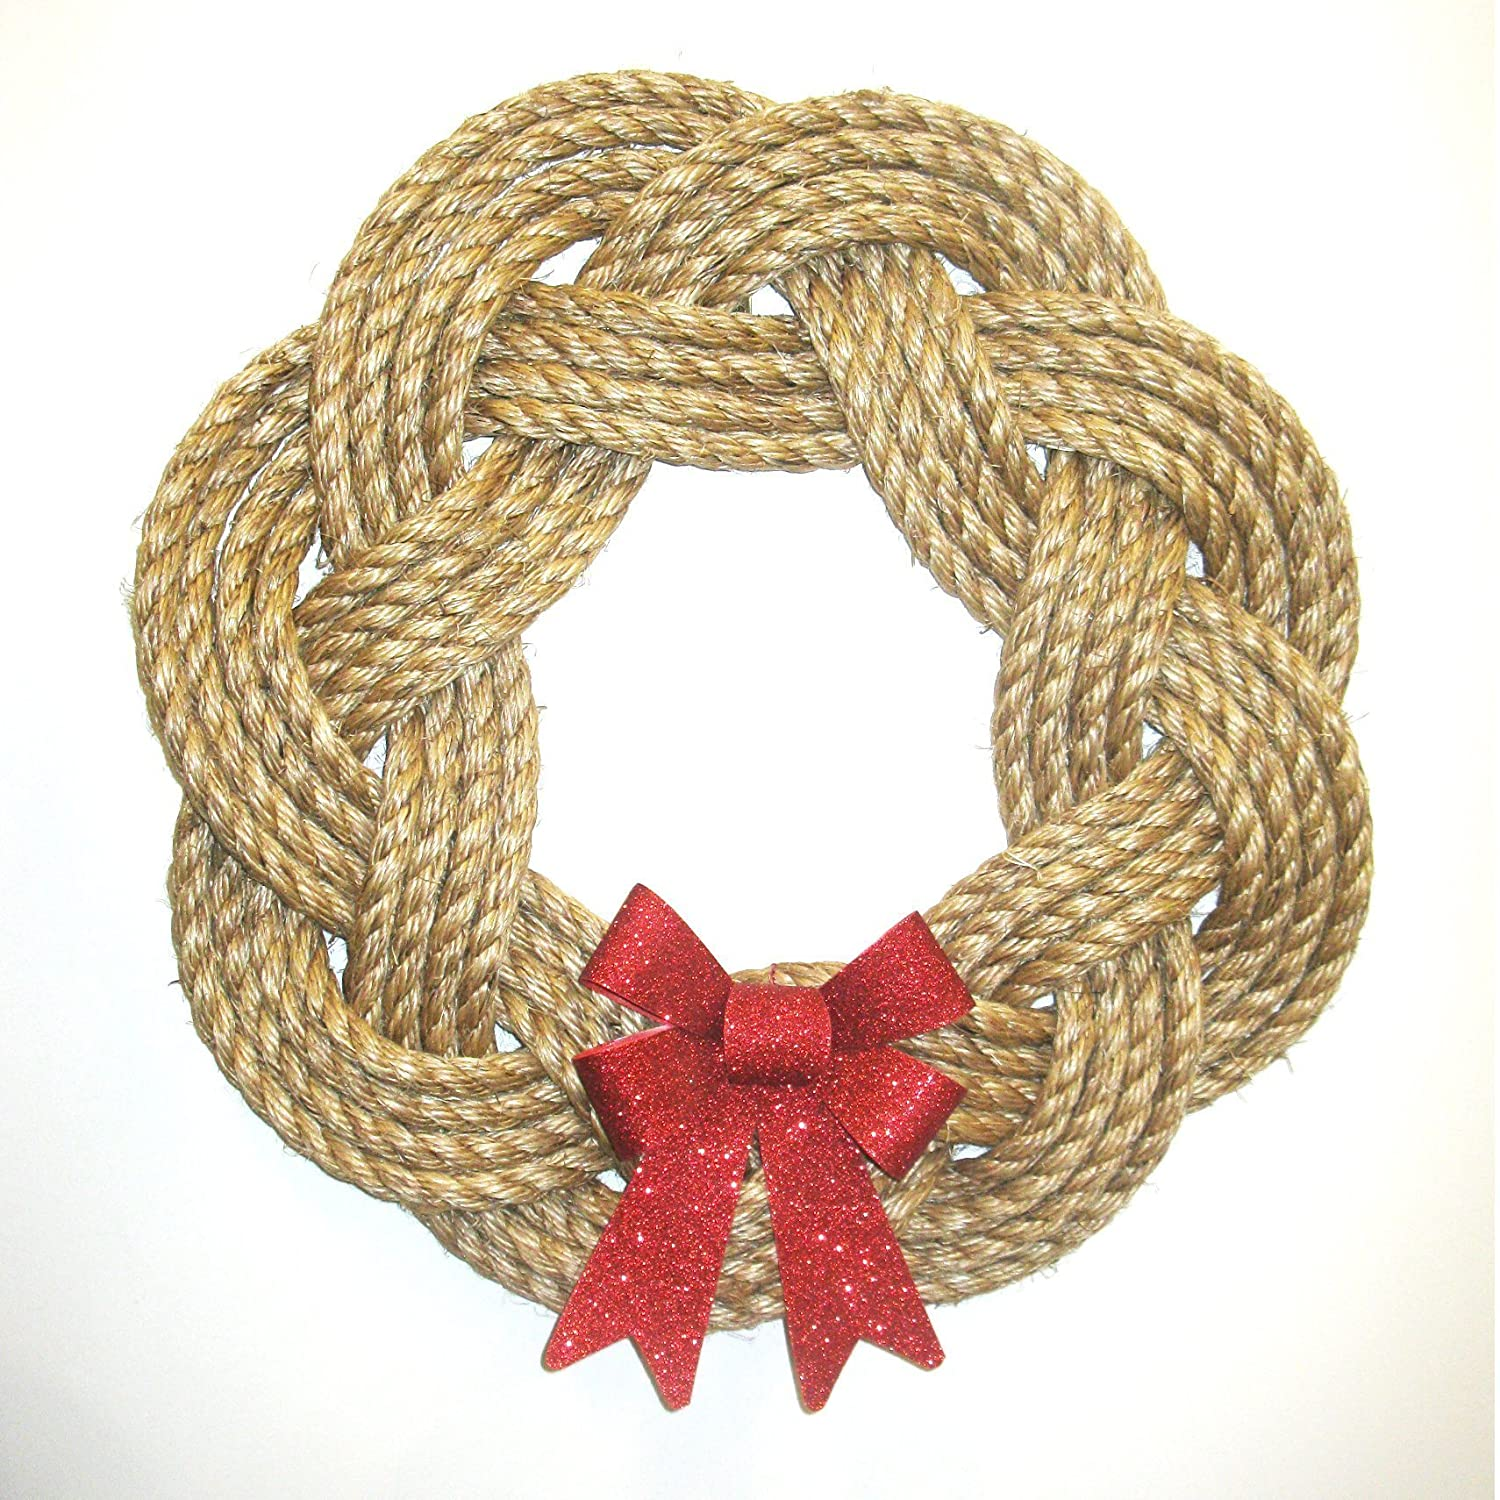 Manila Rope Sailor Knot Wreath